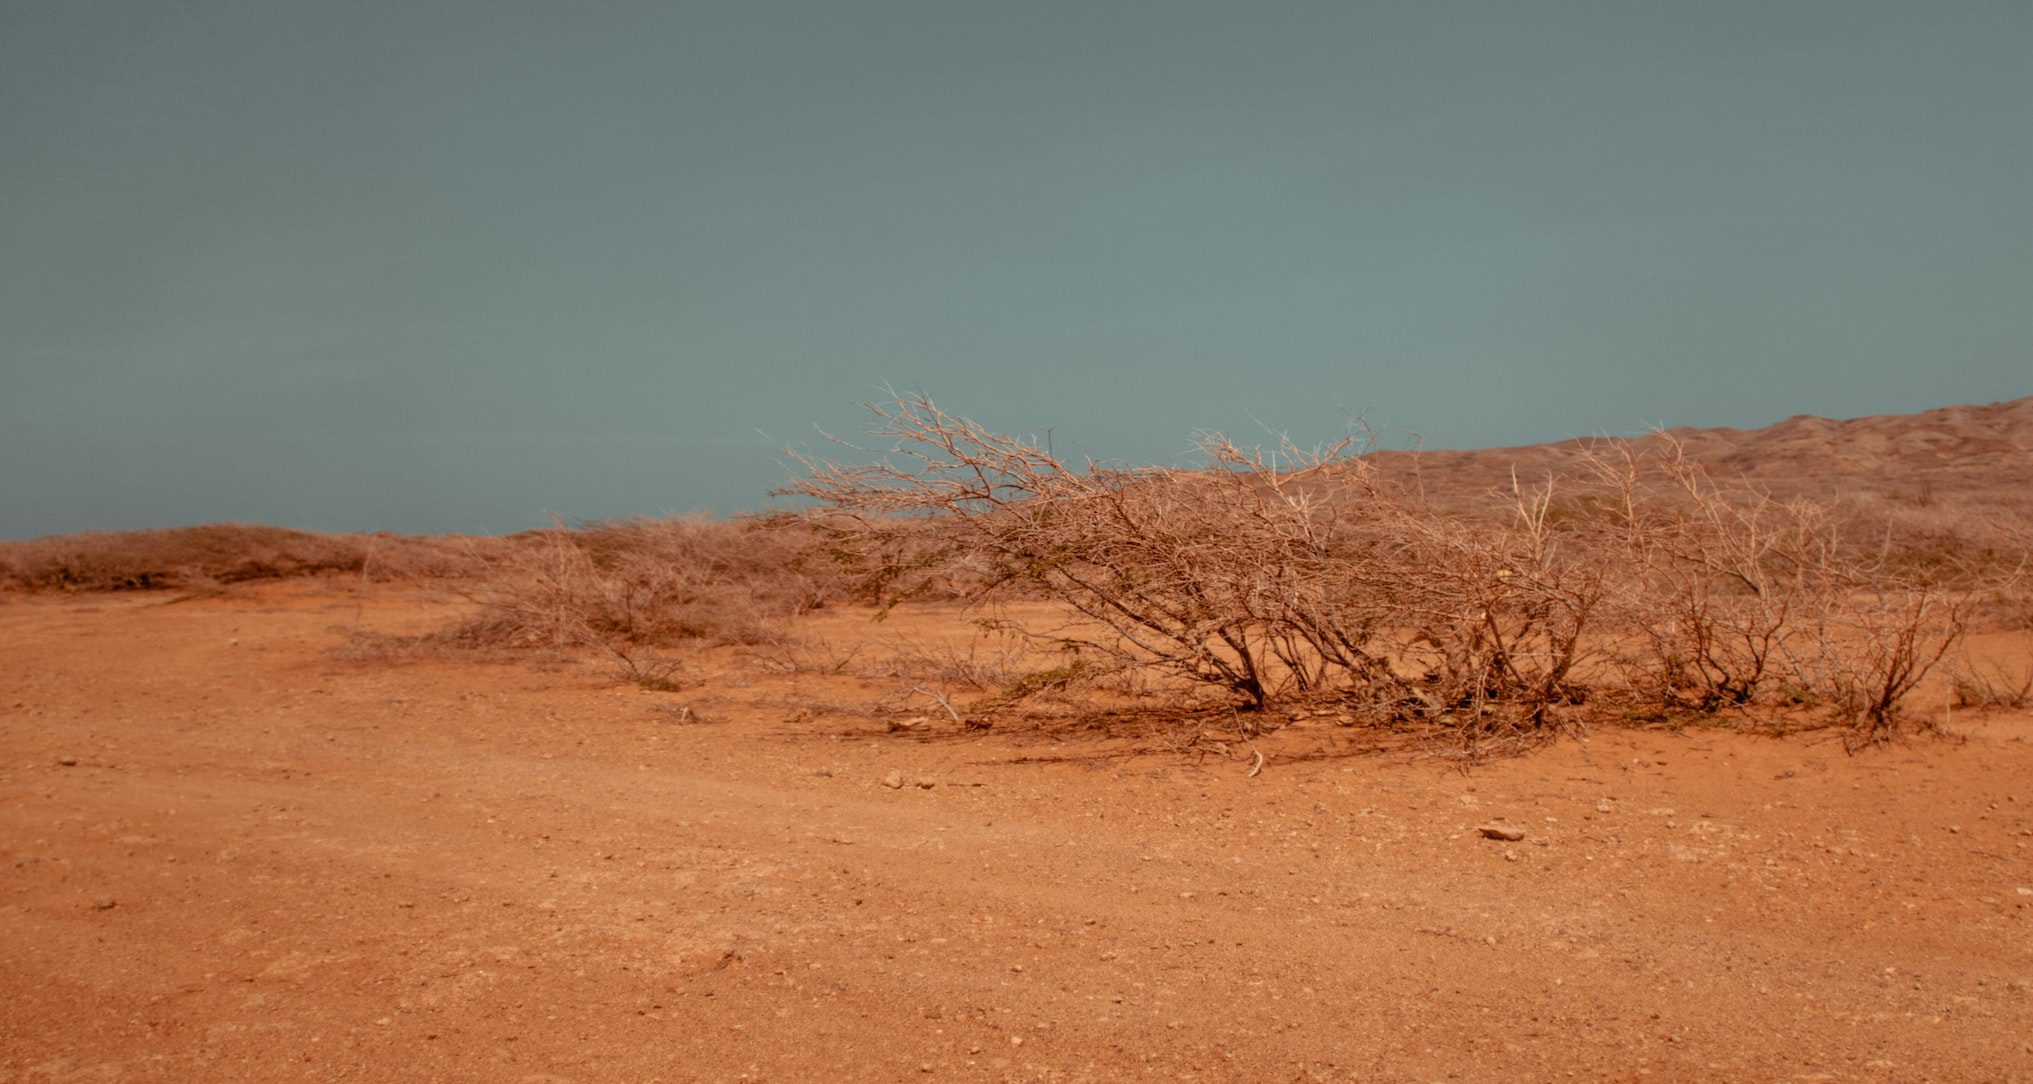 dry and dusty land with a grey sky